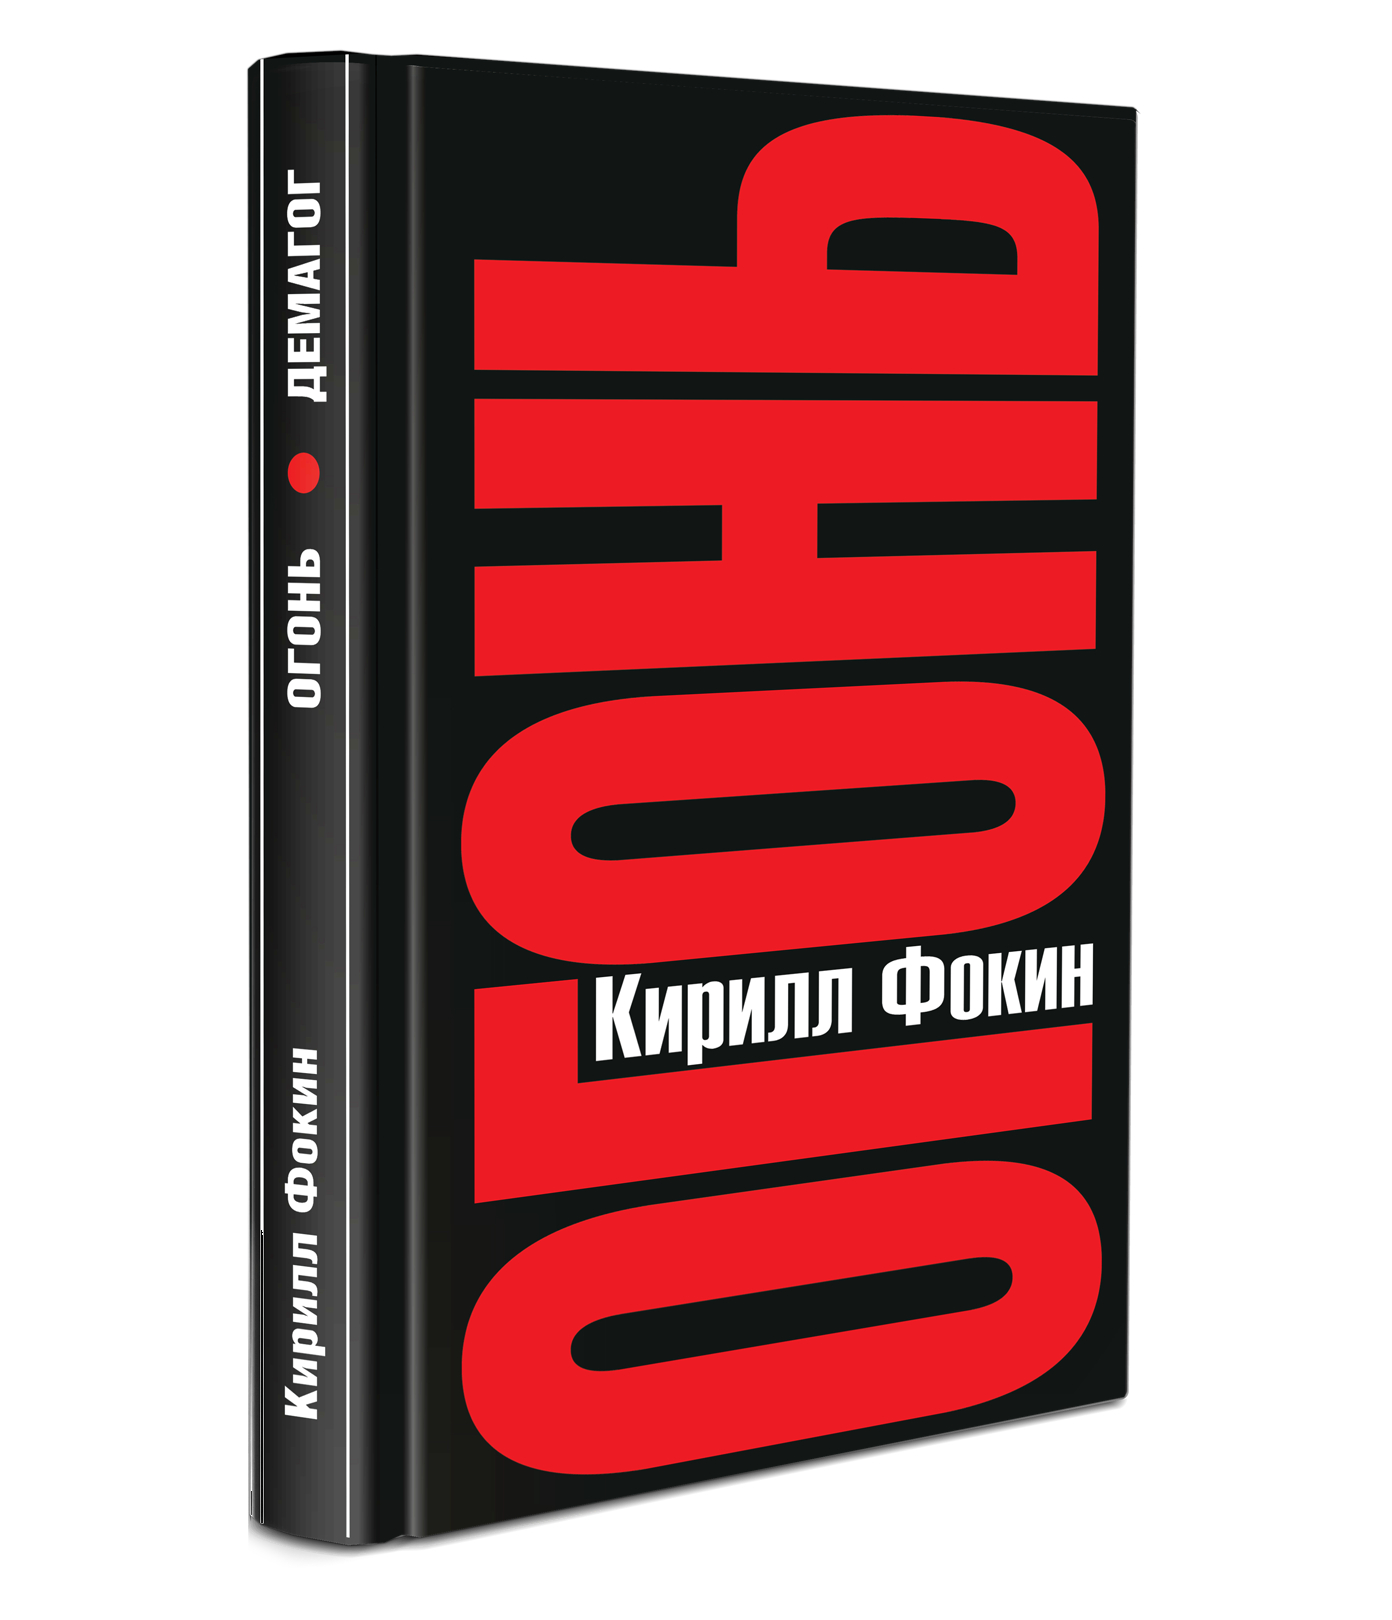 book fokin fire1 1 1392x1620 1 купить в книжном издательстве ОГИ